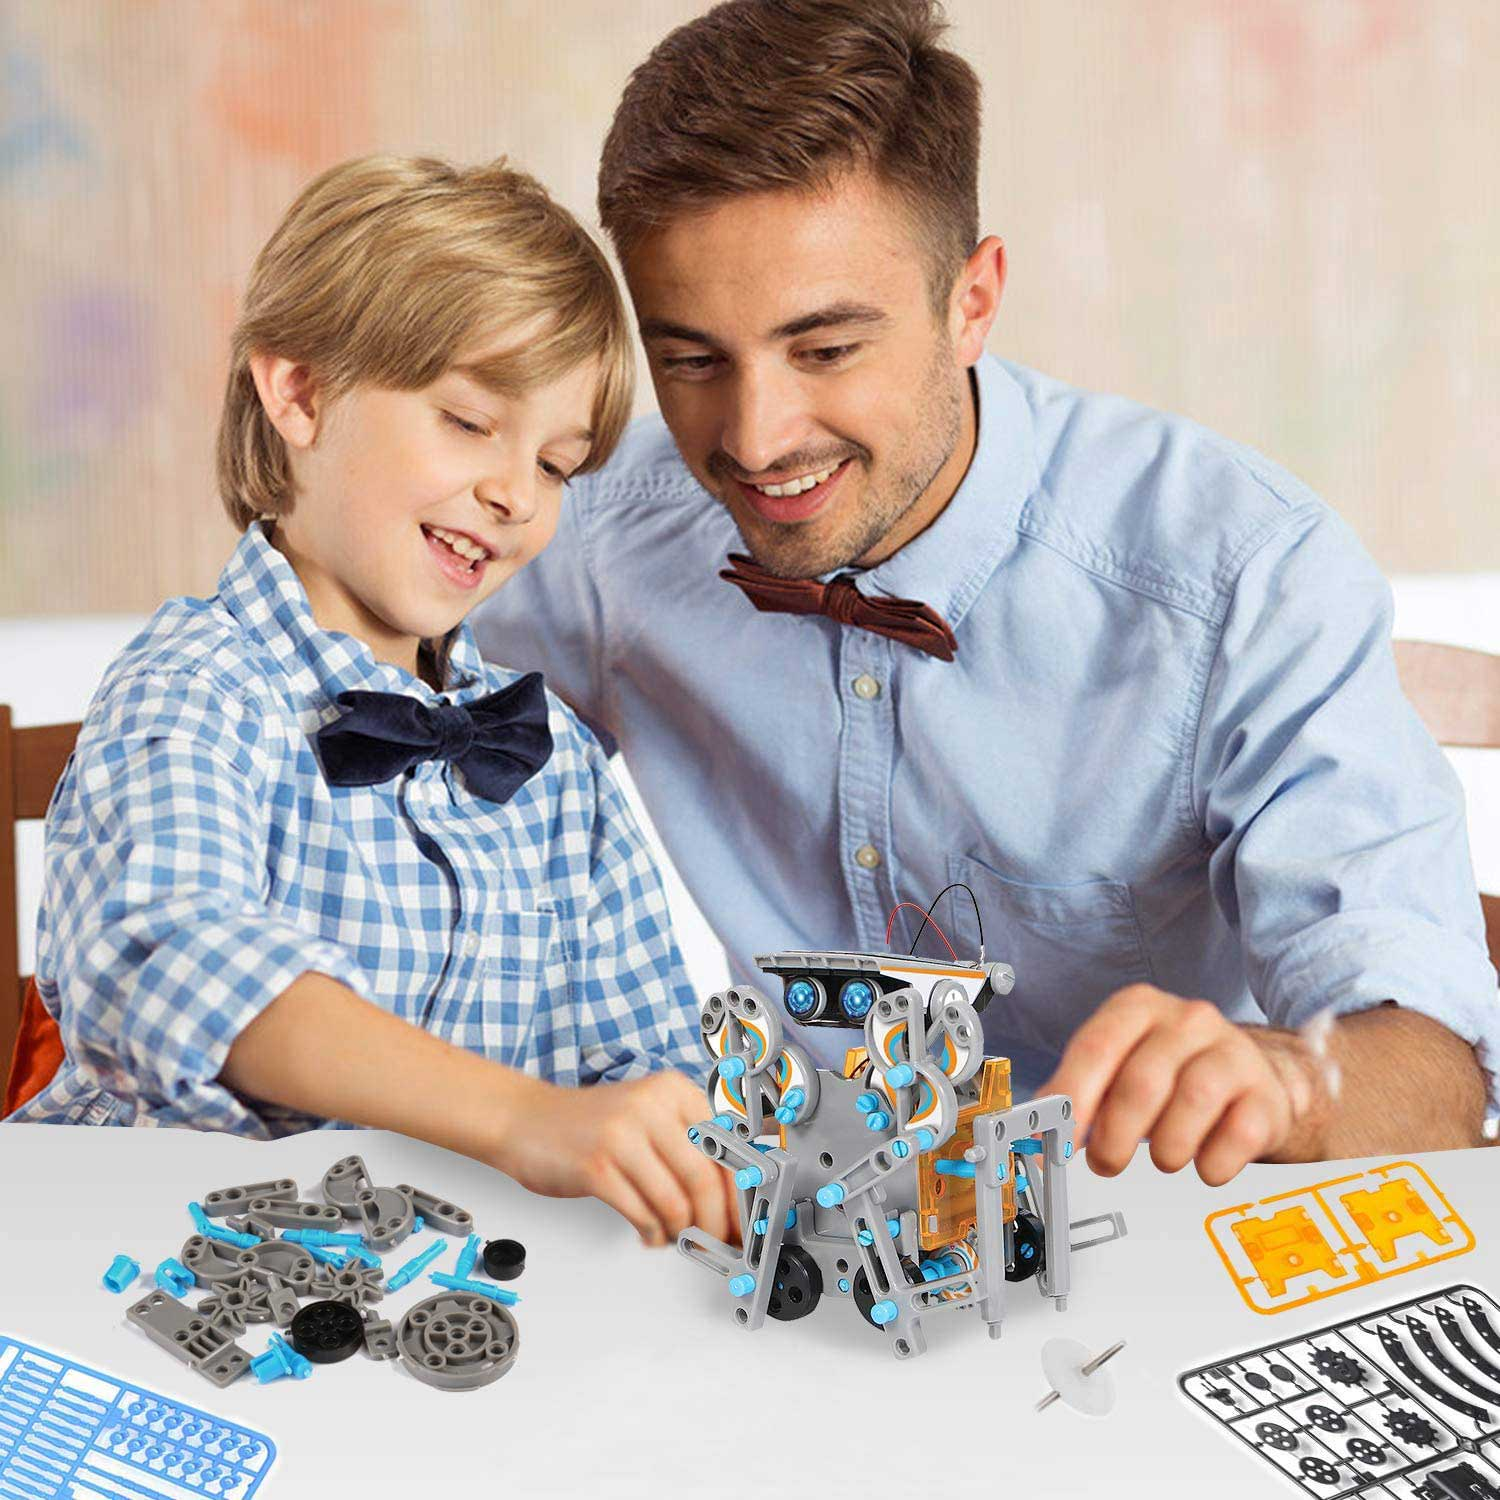 Man and boy playing with robot toys